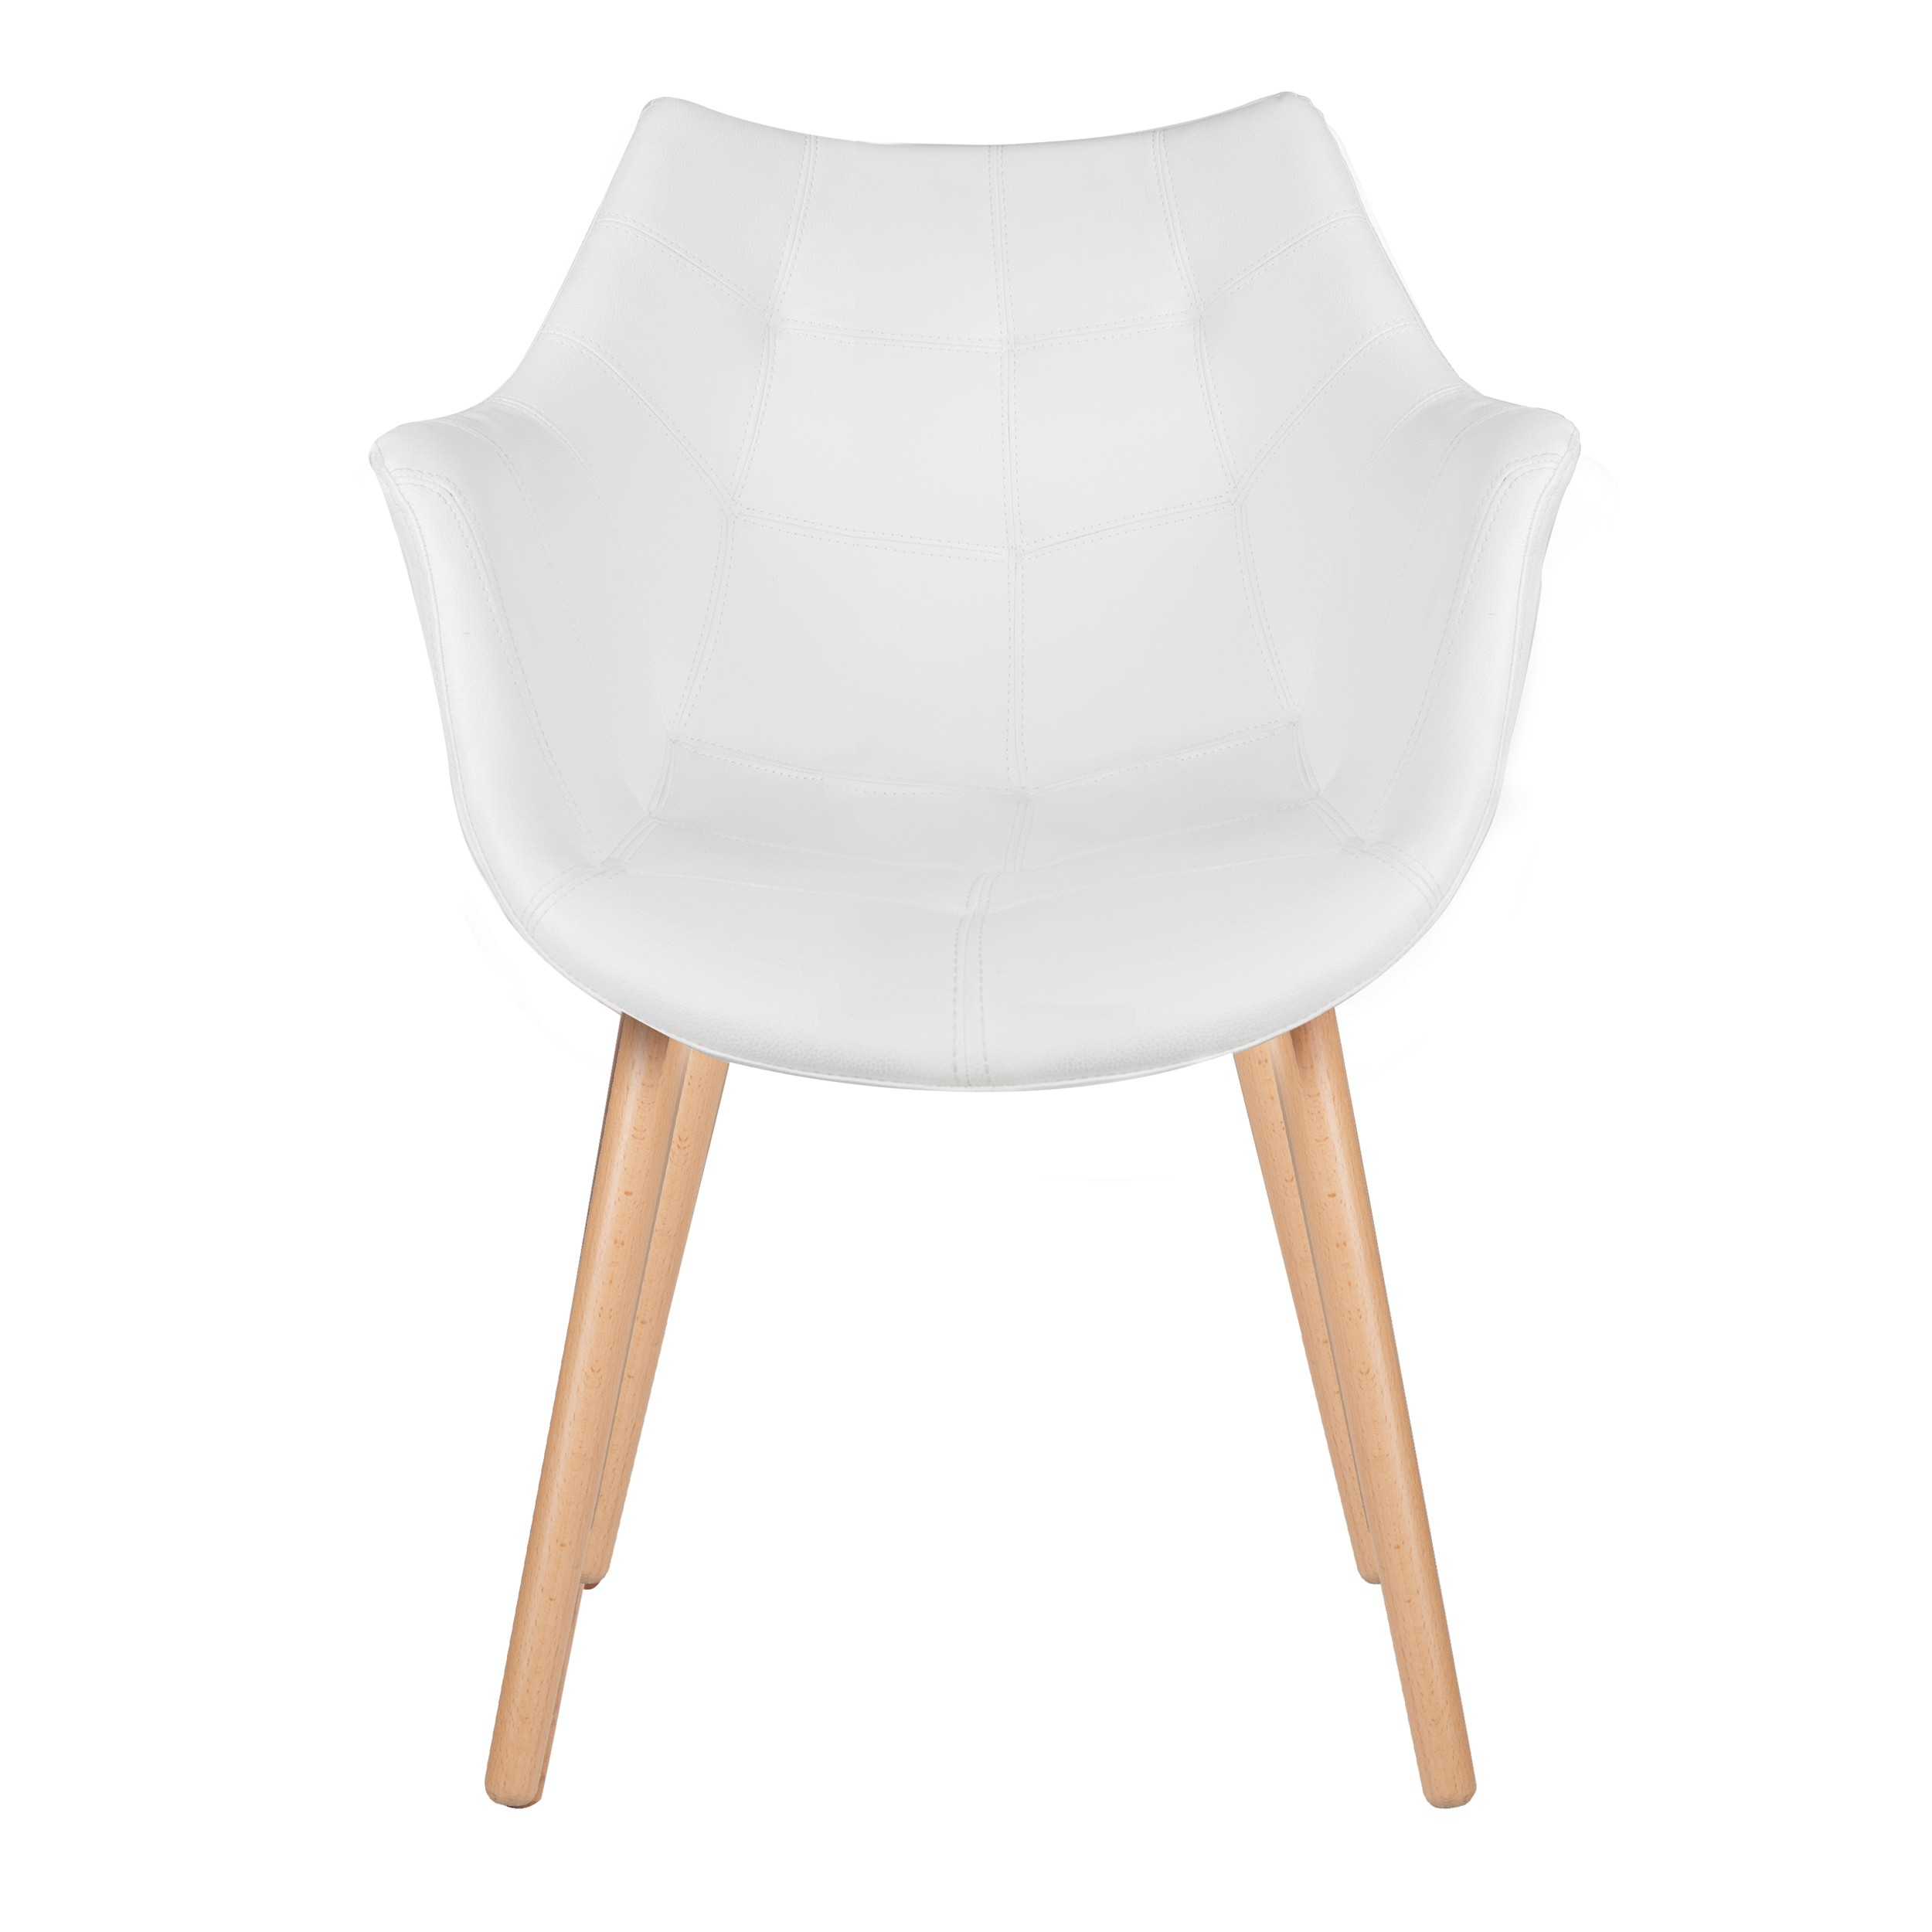 Chaise blanche beau chaise blanche alinea with chaise for Chaise ikea blanche